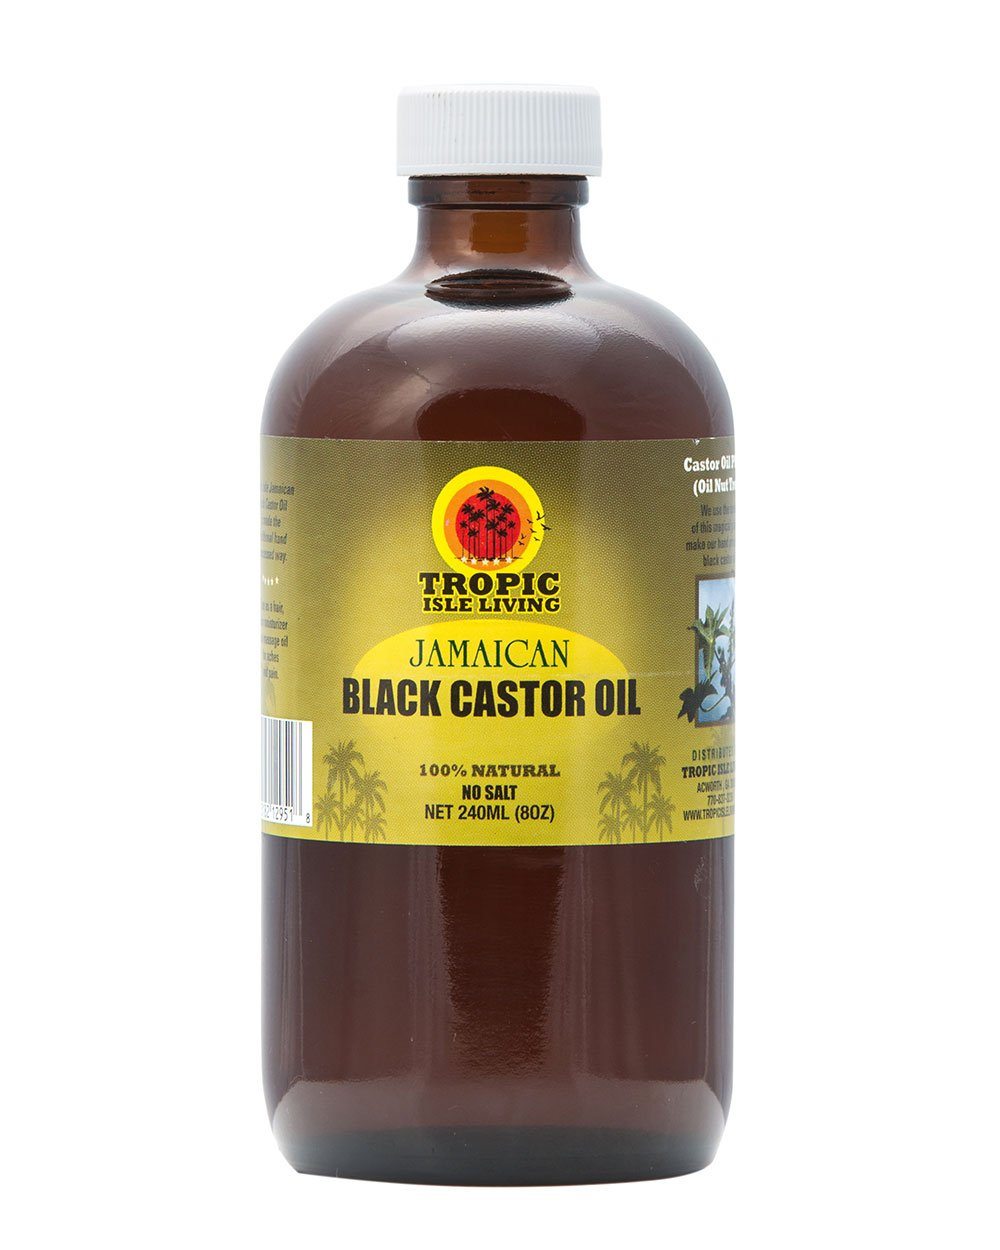 Tropic Isle Living Jamaican Black Castor Oil 8 oz - Glass Bottle